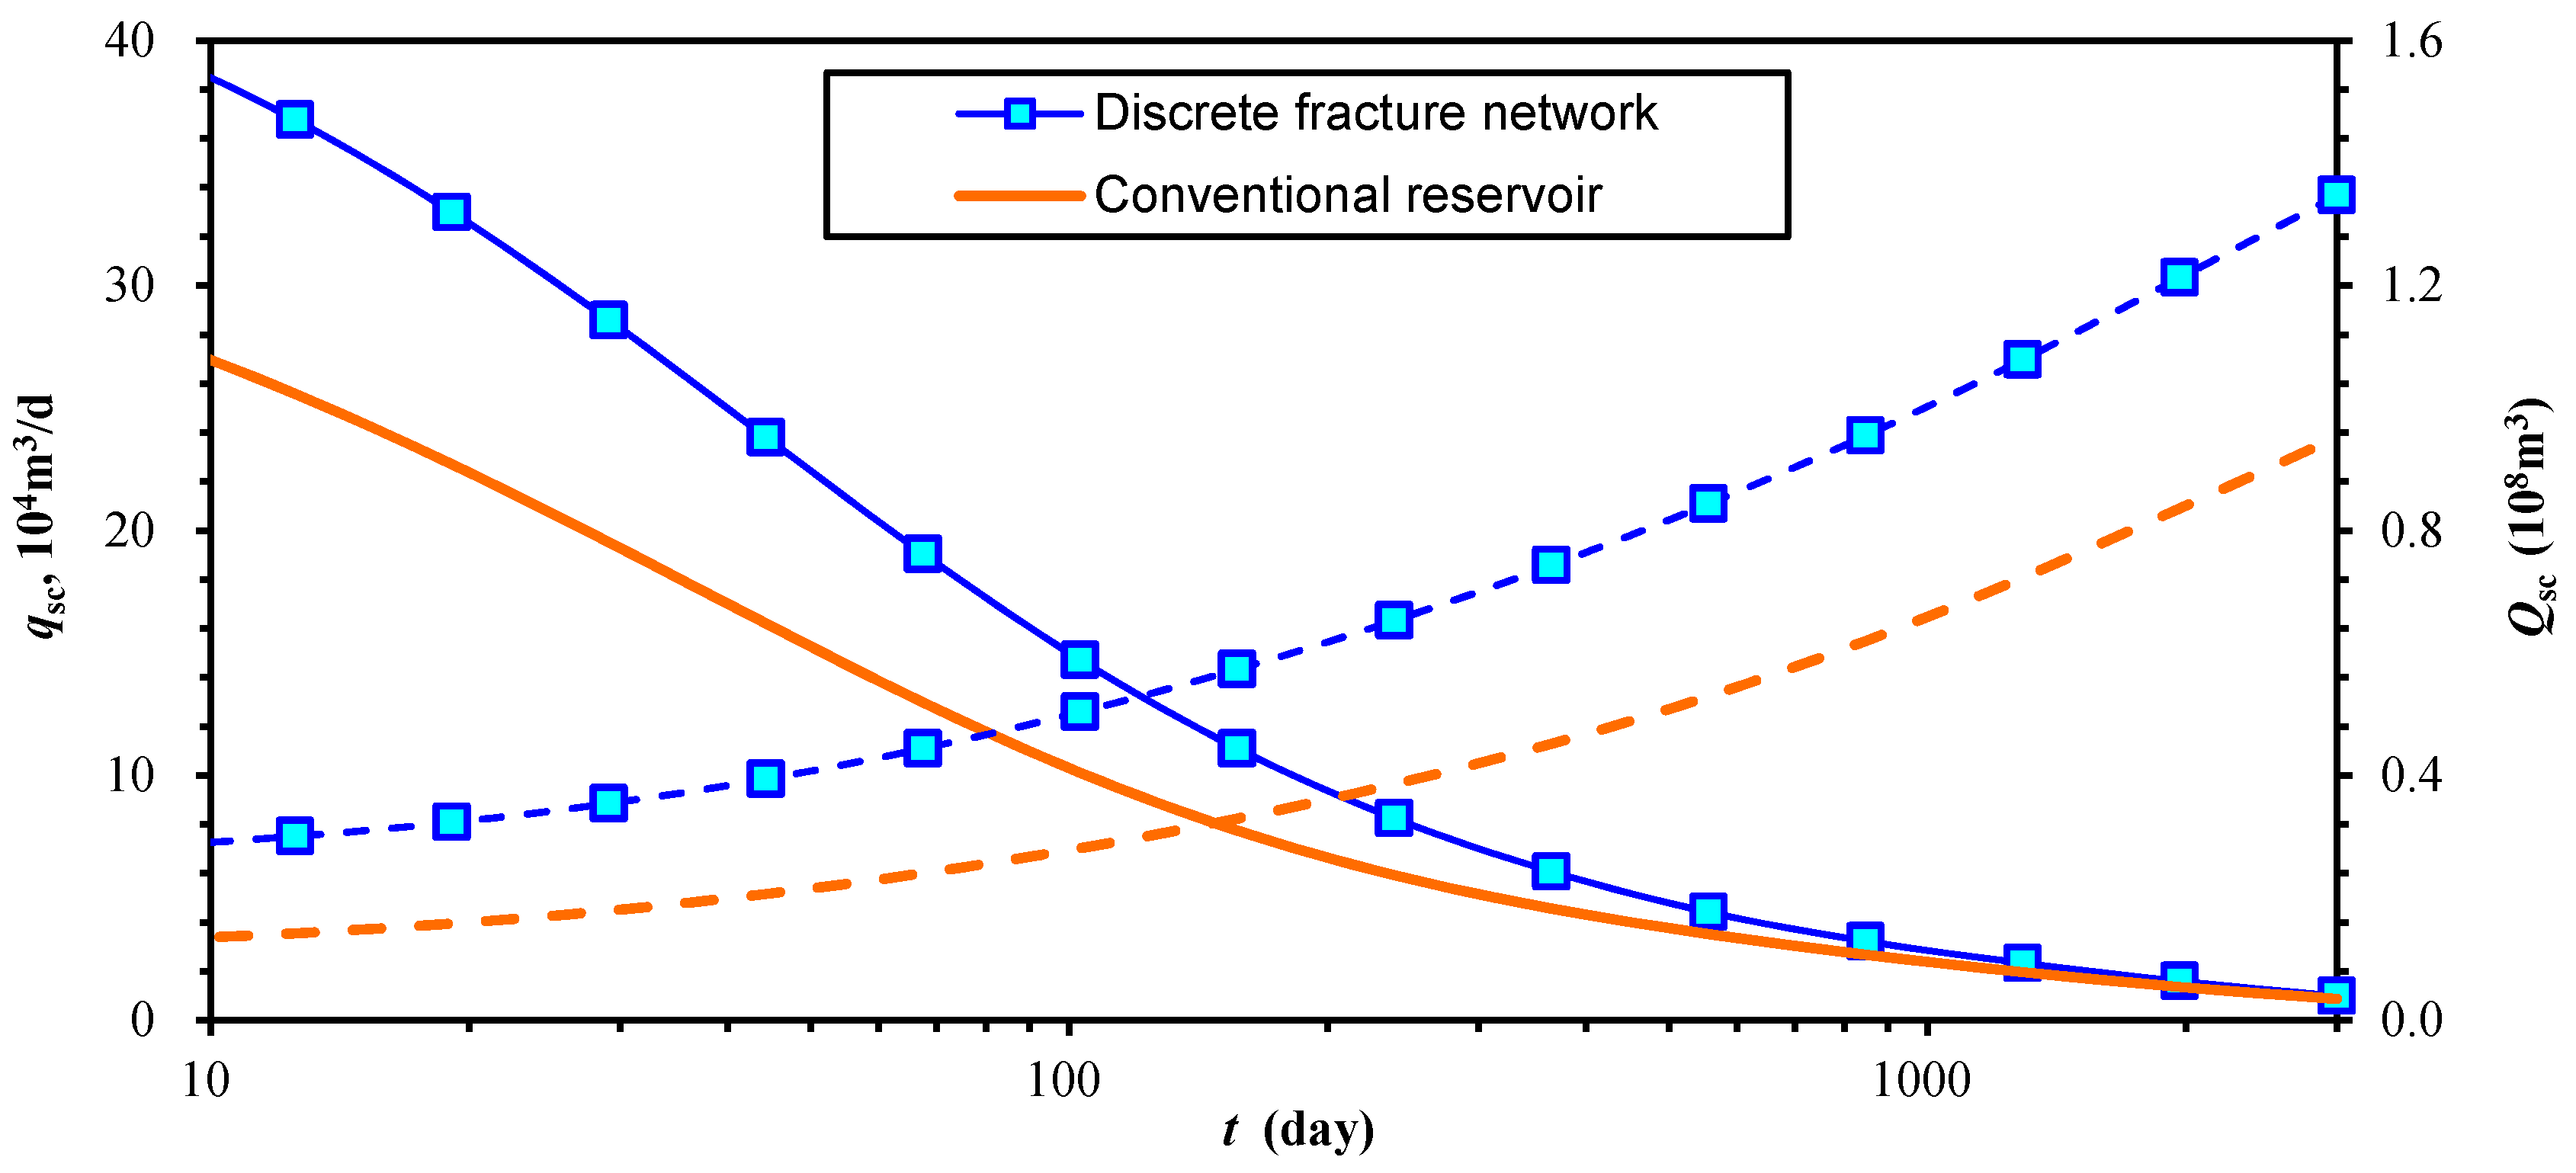 rate transient analysis in shale gas Unconventional gas reservoirs, including tight gas, coalbed methane and shale gas reservoirs, have become a significant source of natural gas supply in north america, and are becoming actively explored for, and in some cases exploited, globally.